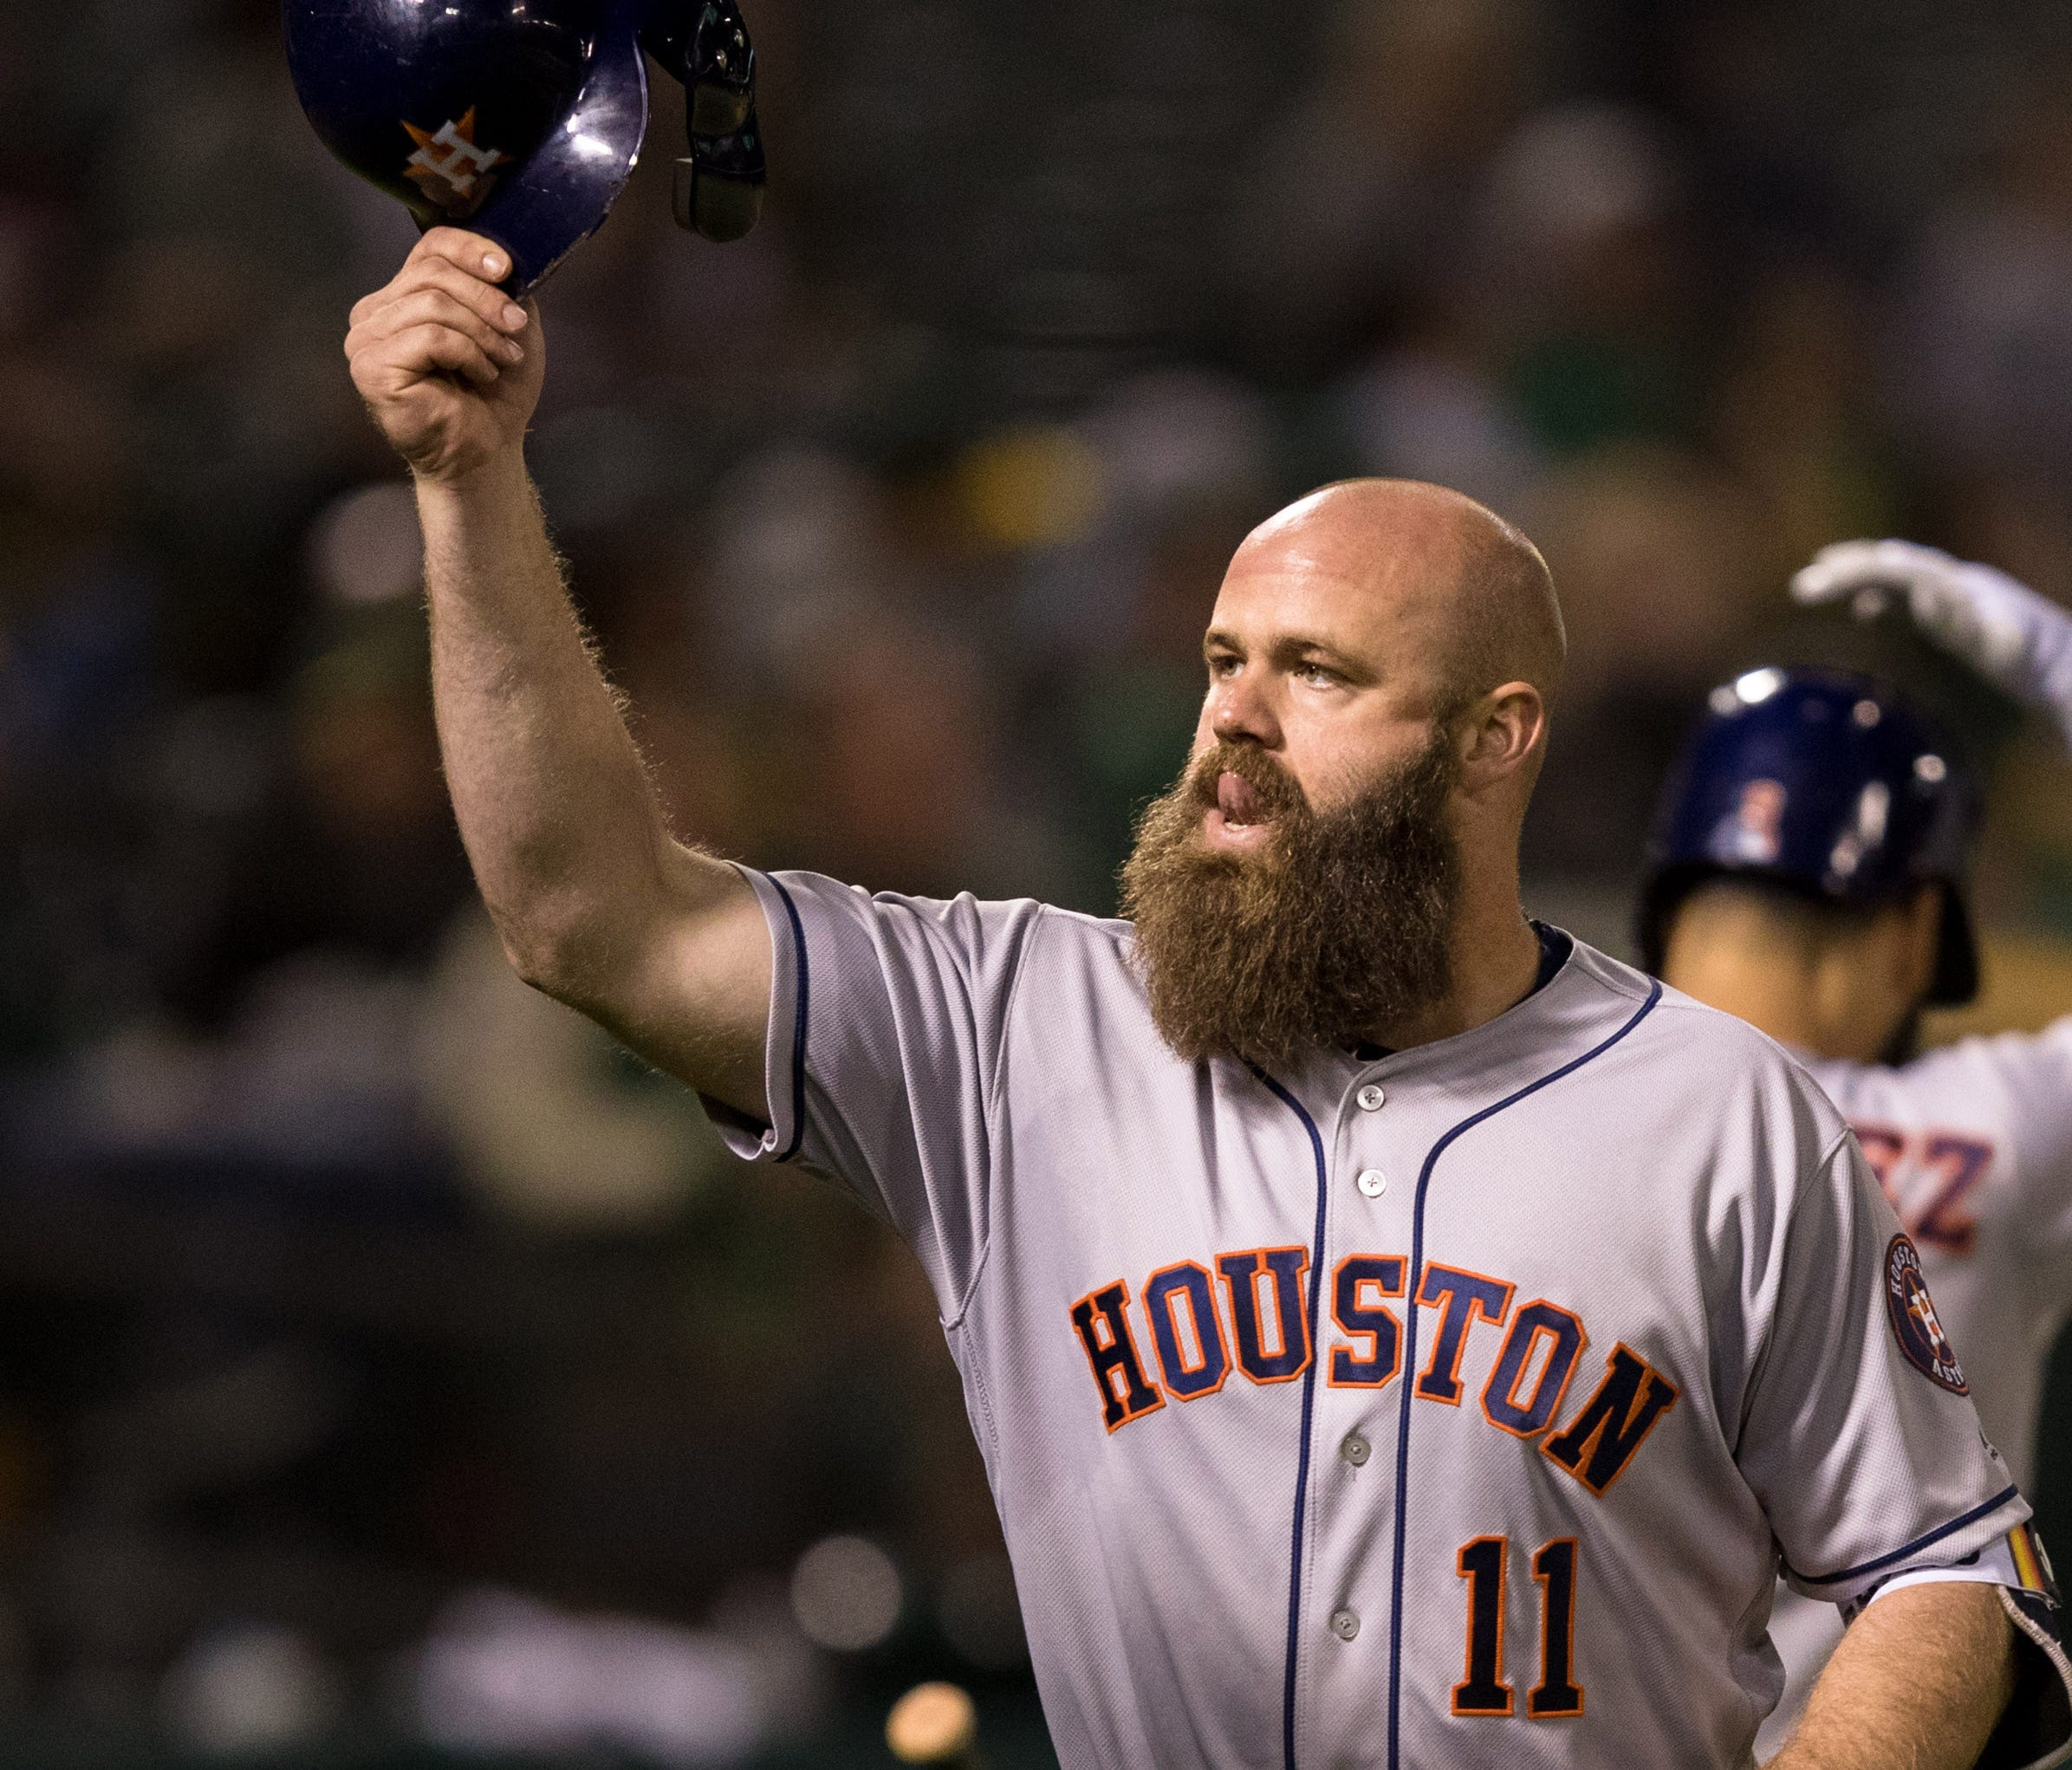 Evan Gattis reacts after hitting a solo home run.